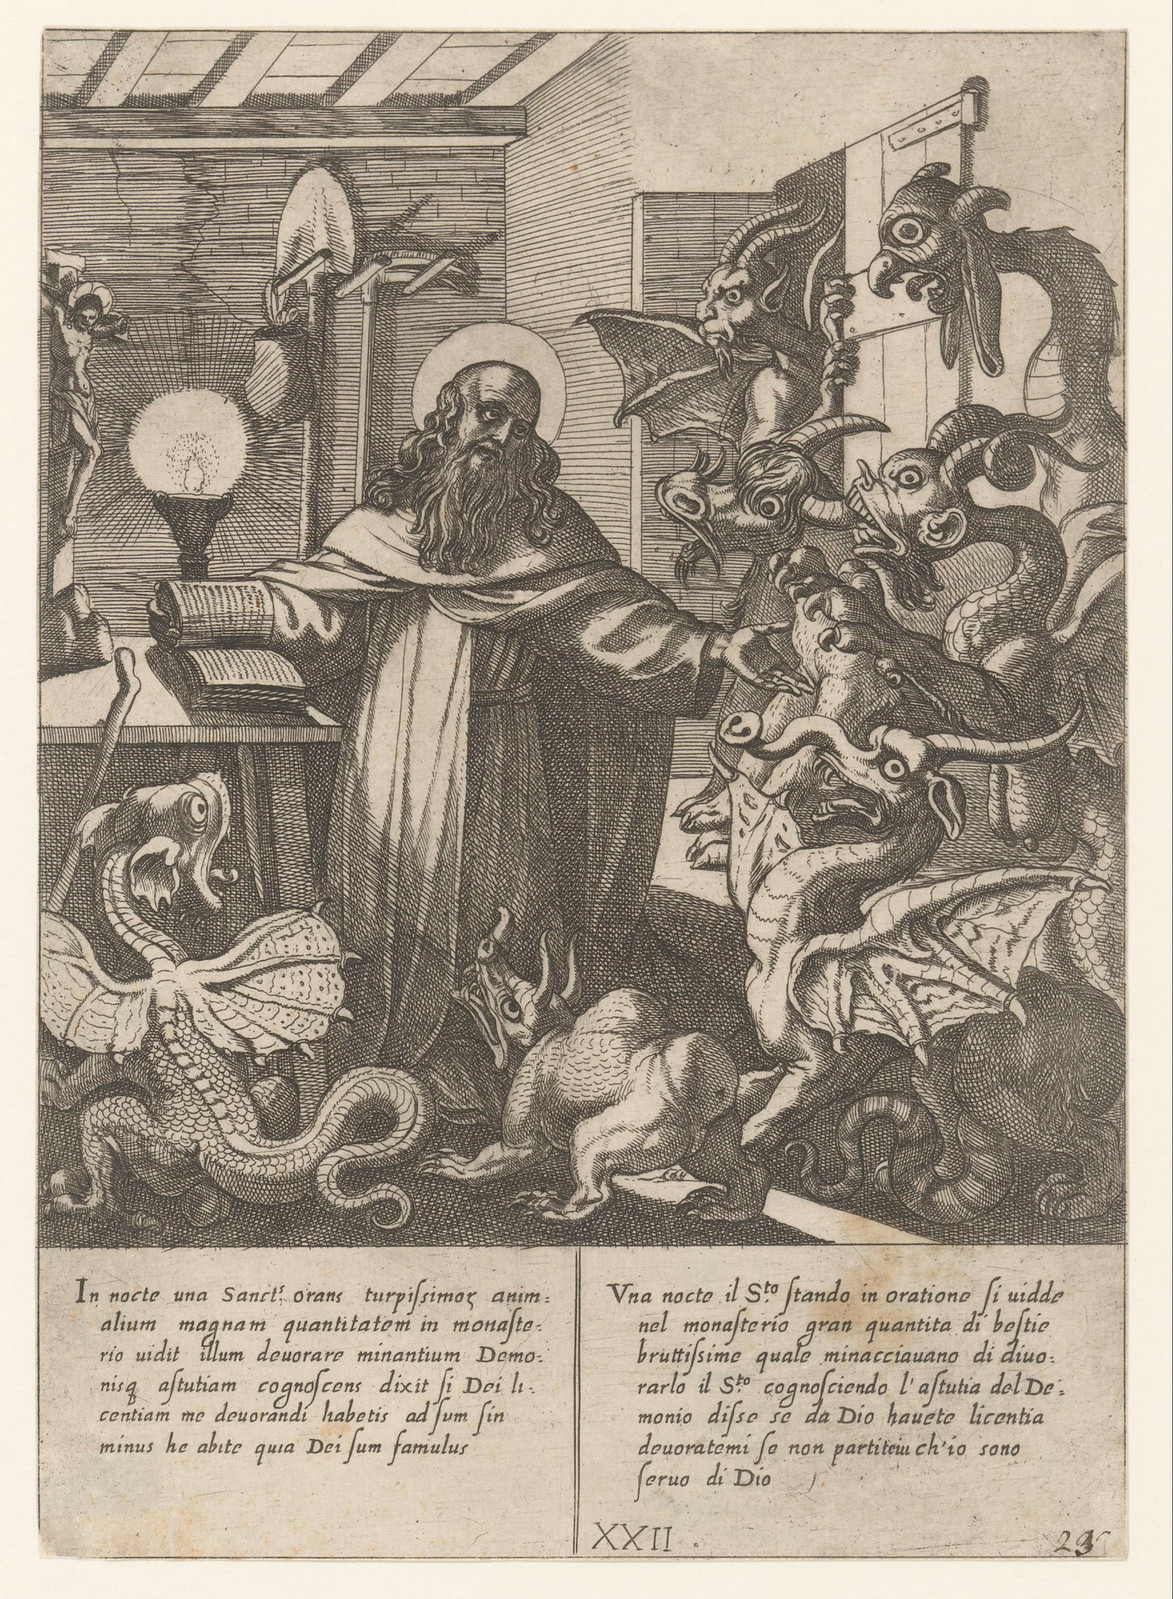 Antonio Tempesta, after Niccolo Circignani and Giovanni Battista Lombardelli - Saint Anthony With Demons - 02, 1598